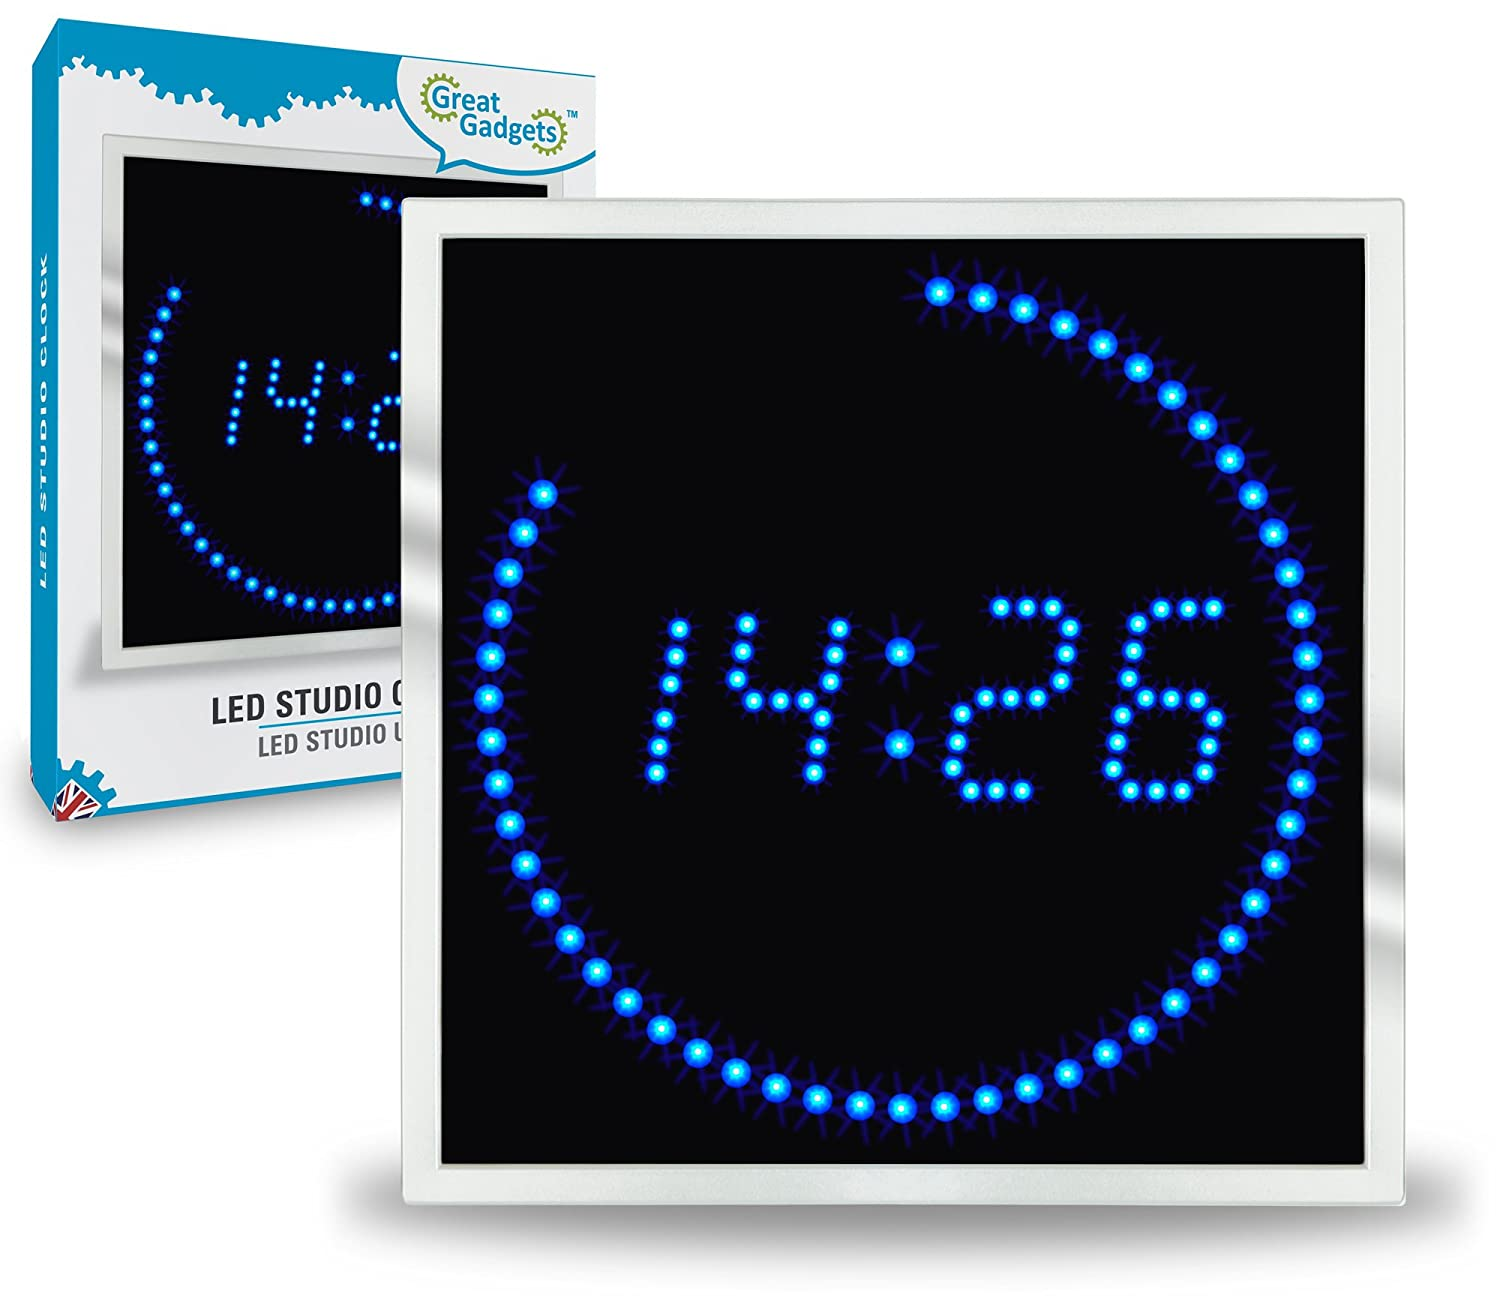 Exceptional Led Uhr Schlafzimmer #11: Amazon.de: GreatGadgets 1886 LED Studio Uhr